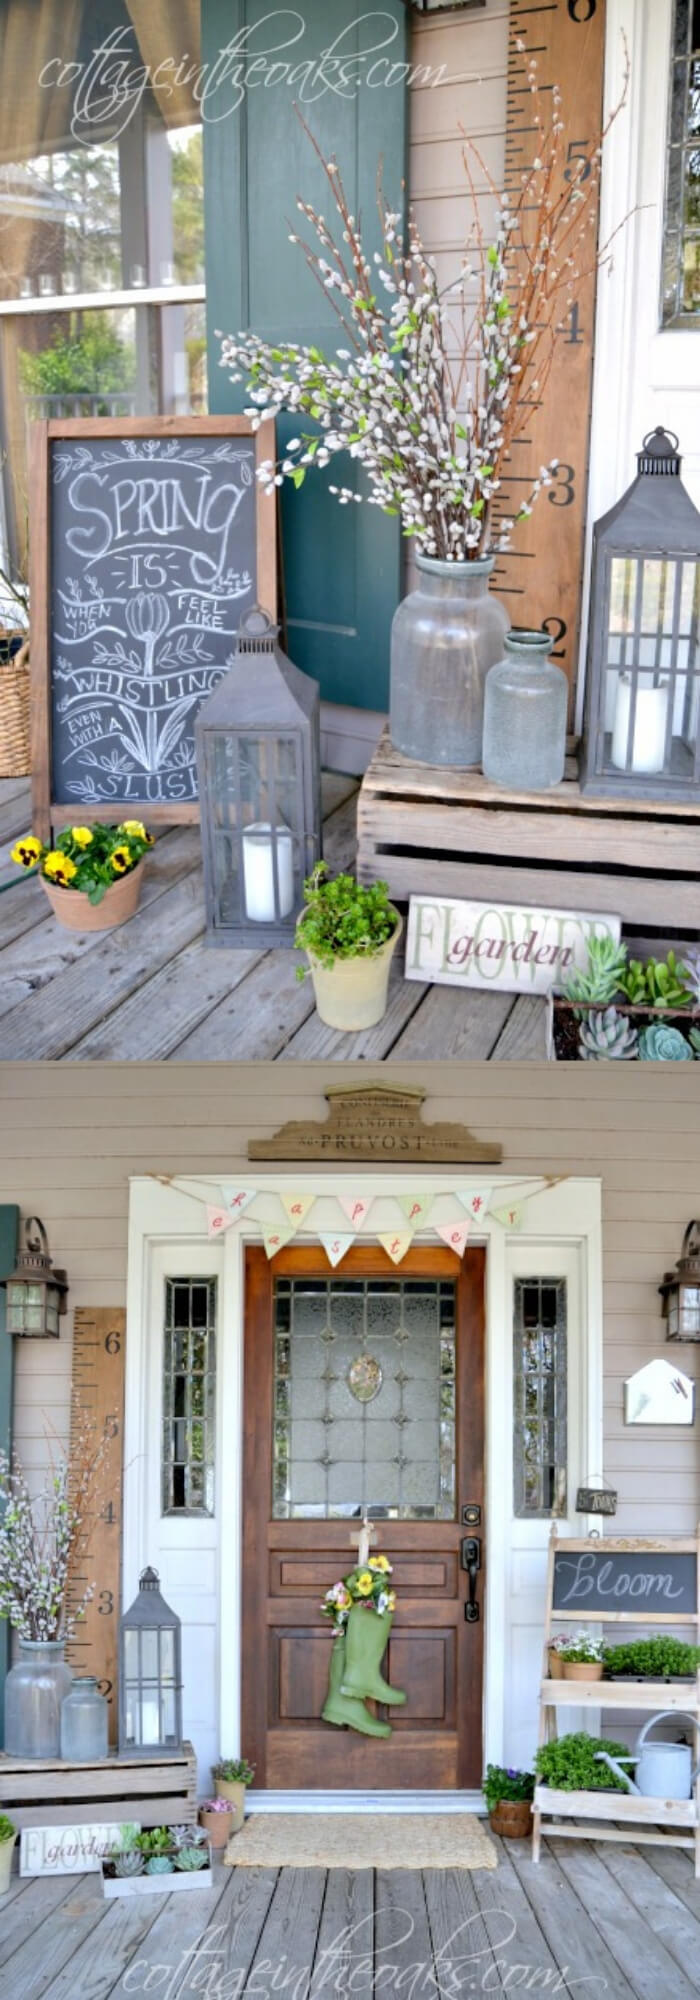 Spring is whistling sign | Best Spring Porch Sign Decor Ideas & Designs